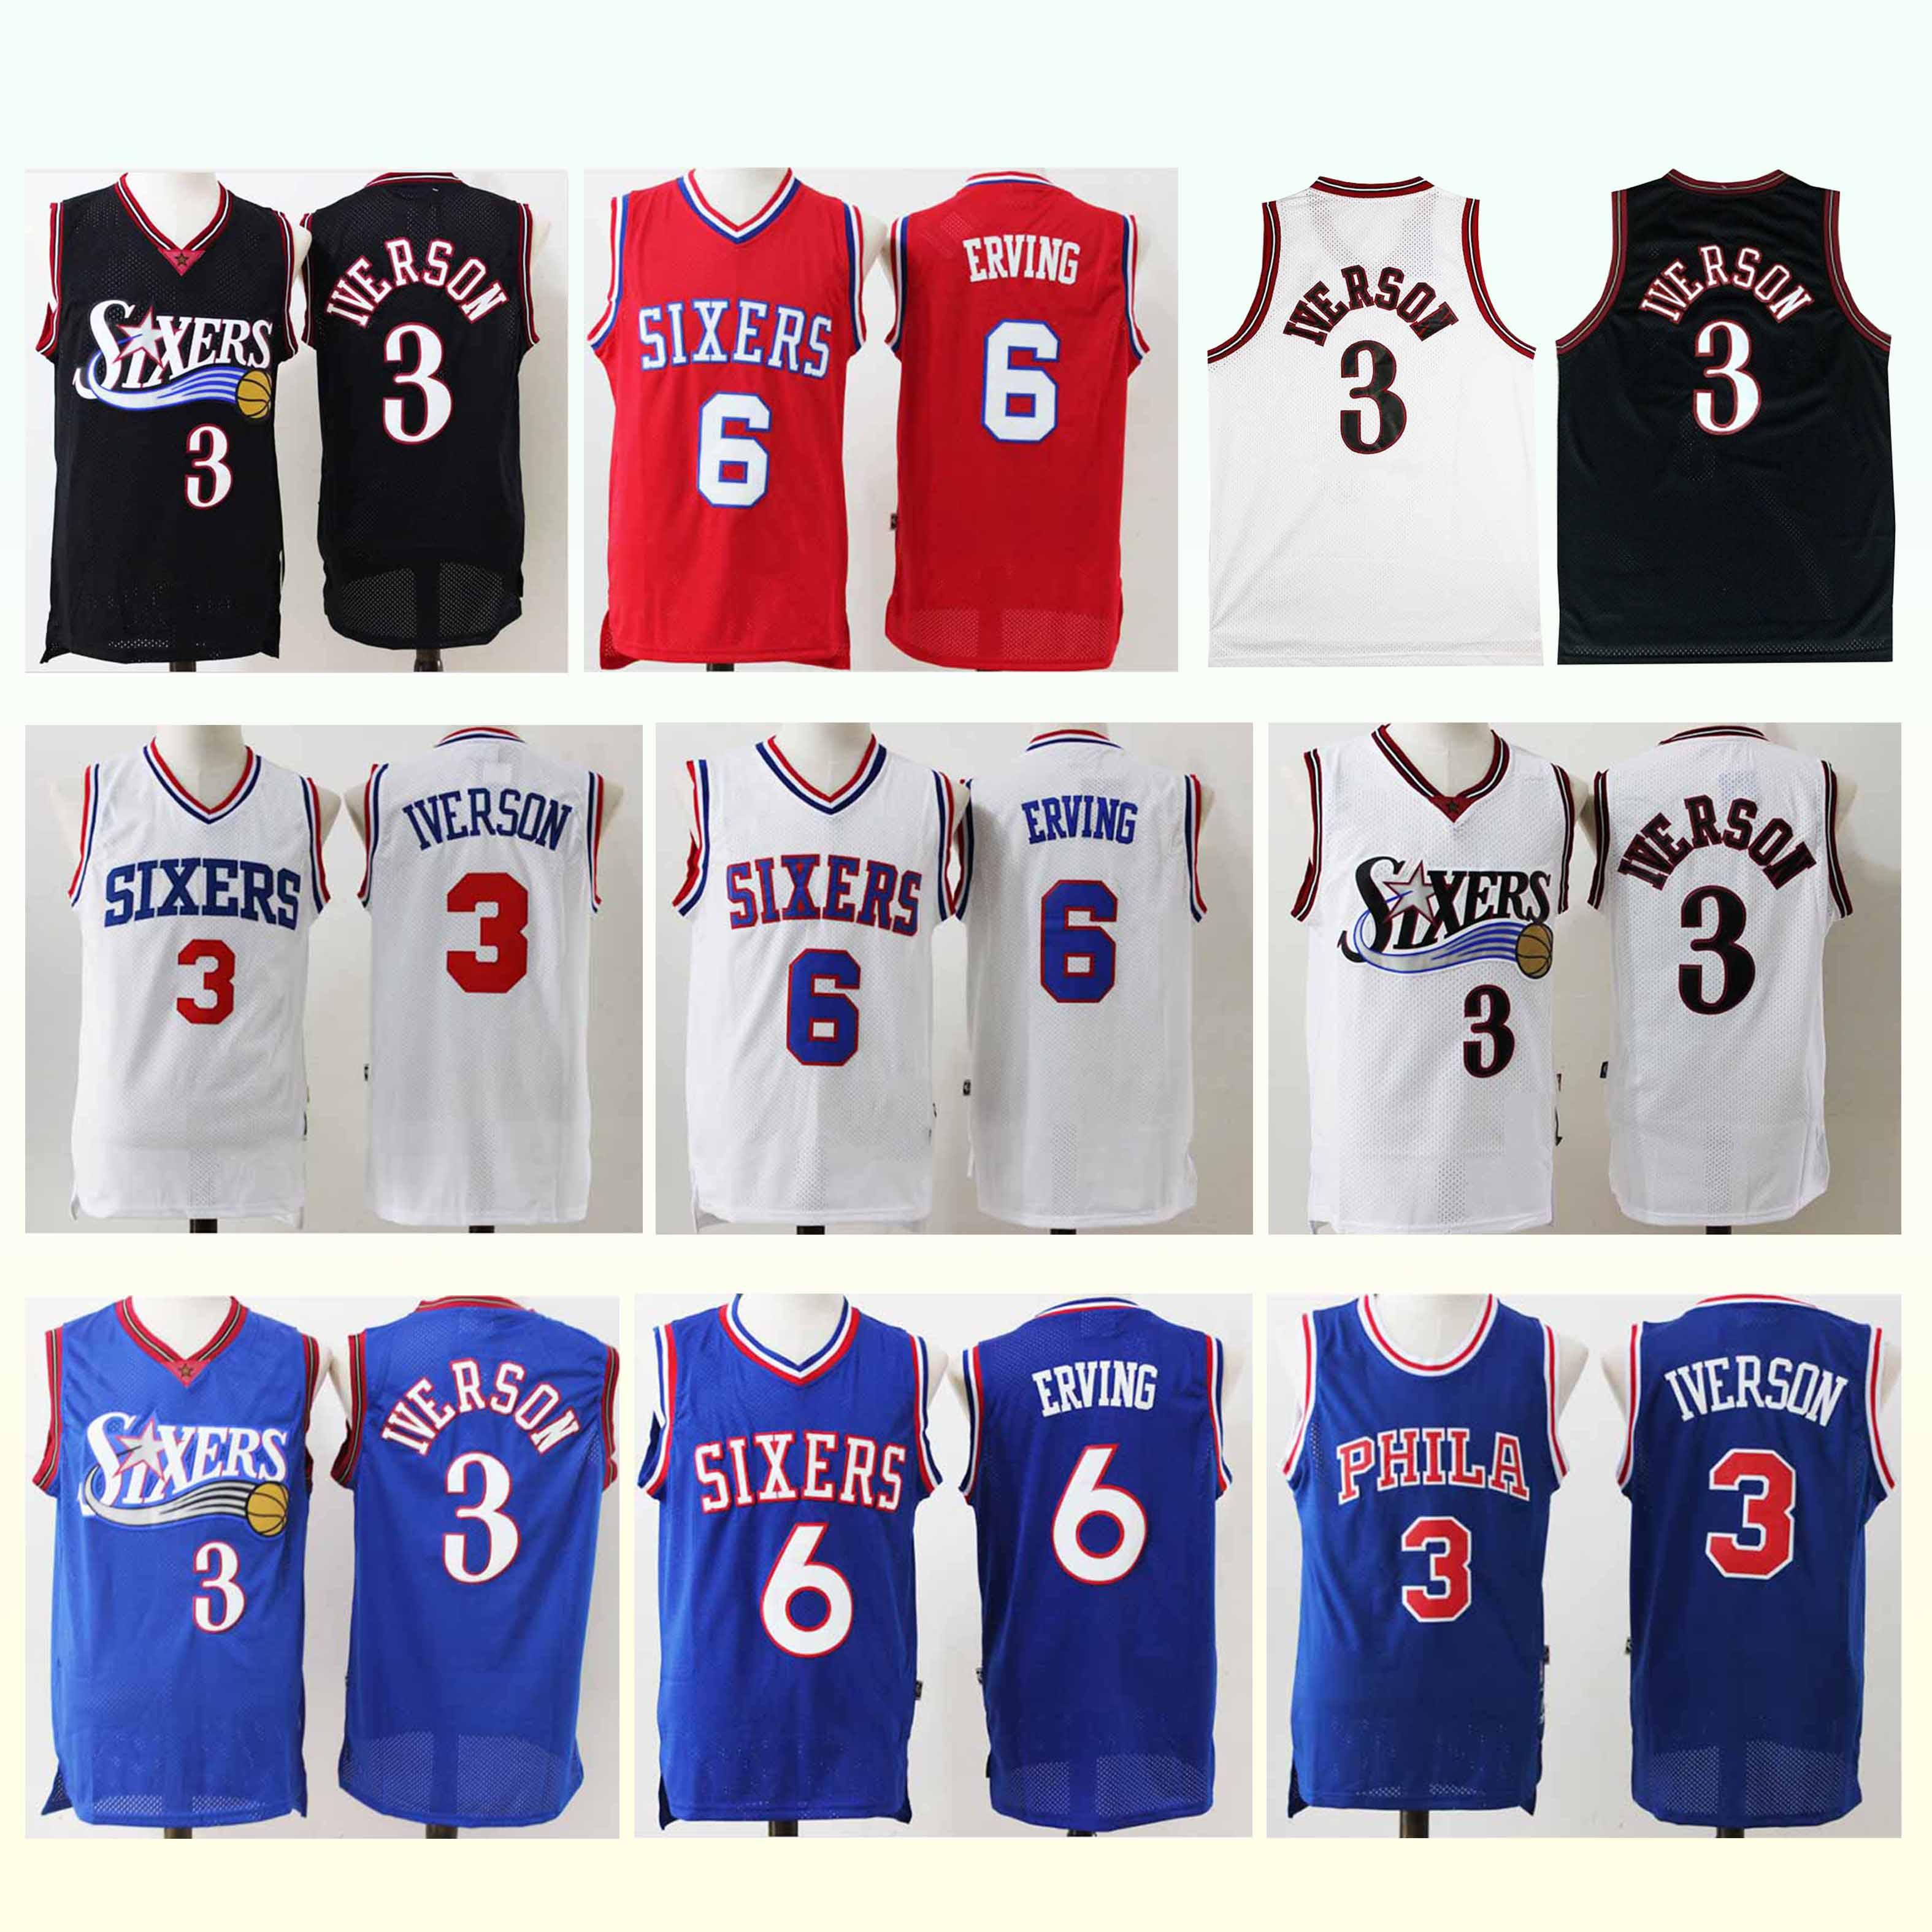 watch 51403 7c271 Retro jersey 3 Iverson 6 ERVING 18/19 new men basketball jerseys superior  quality 2019 Free shopping